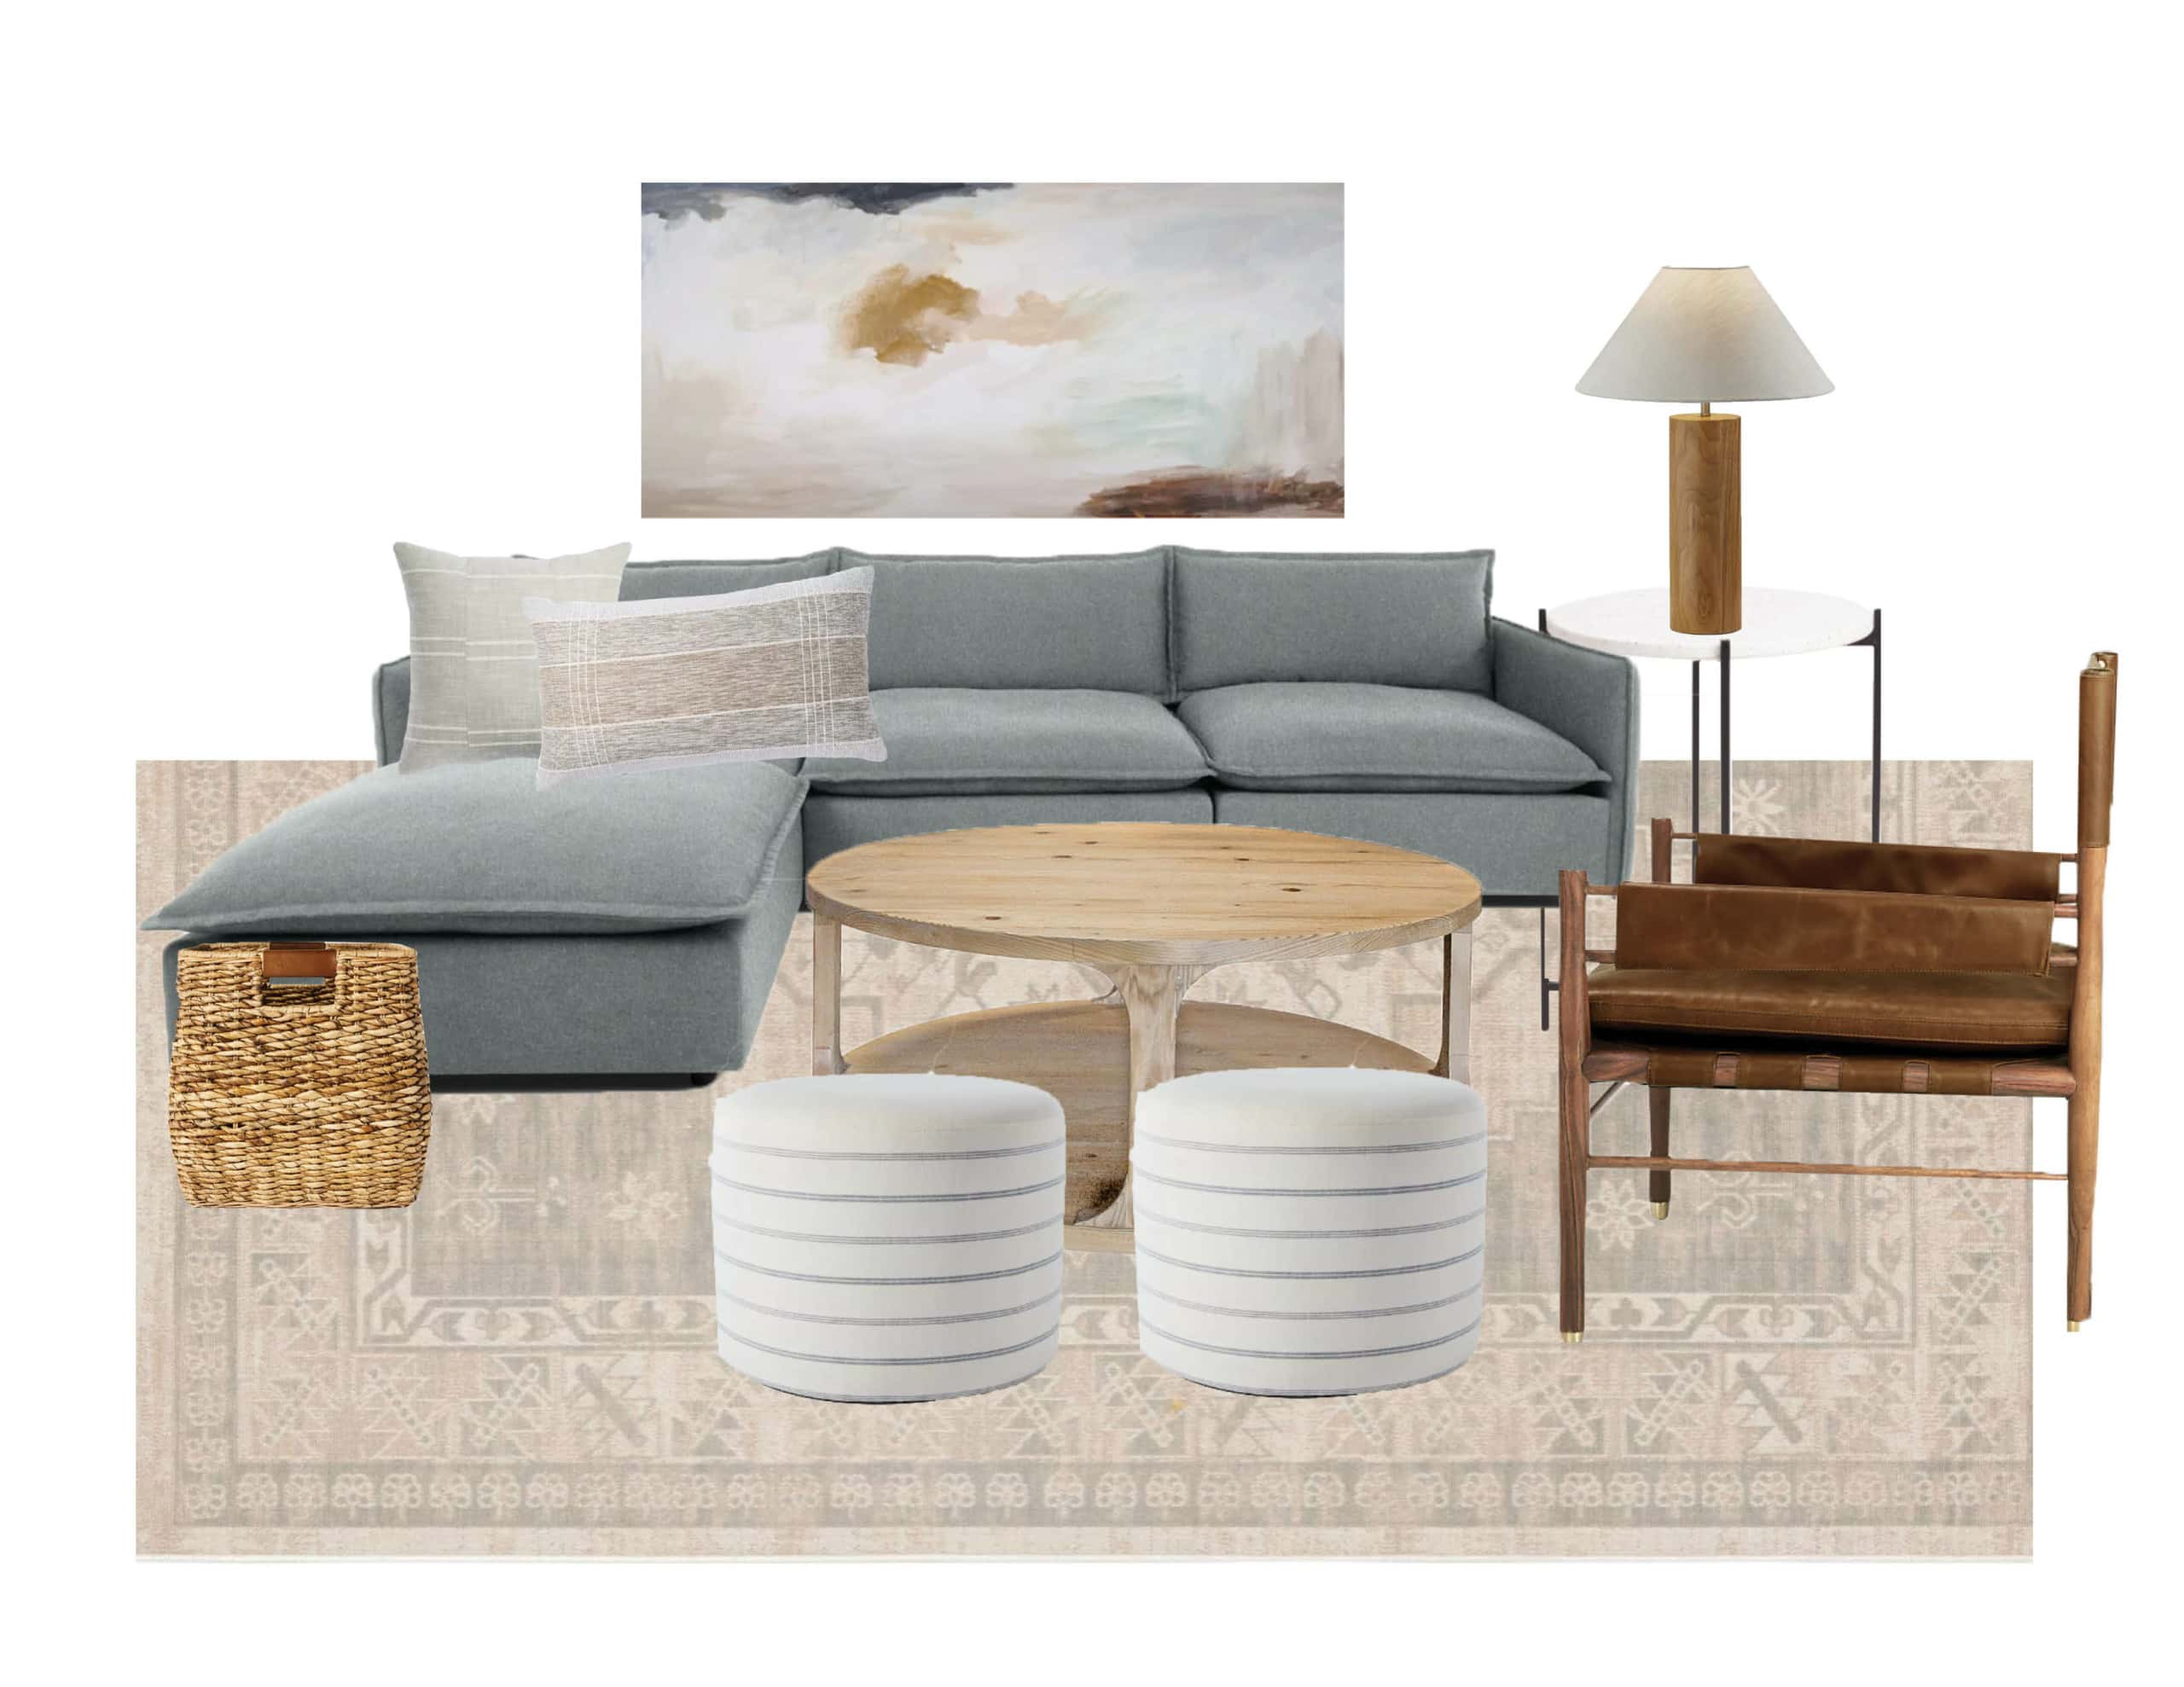 Figuring out the best living room furniture layout